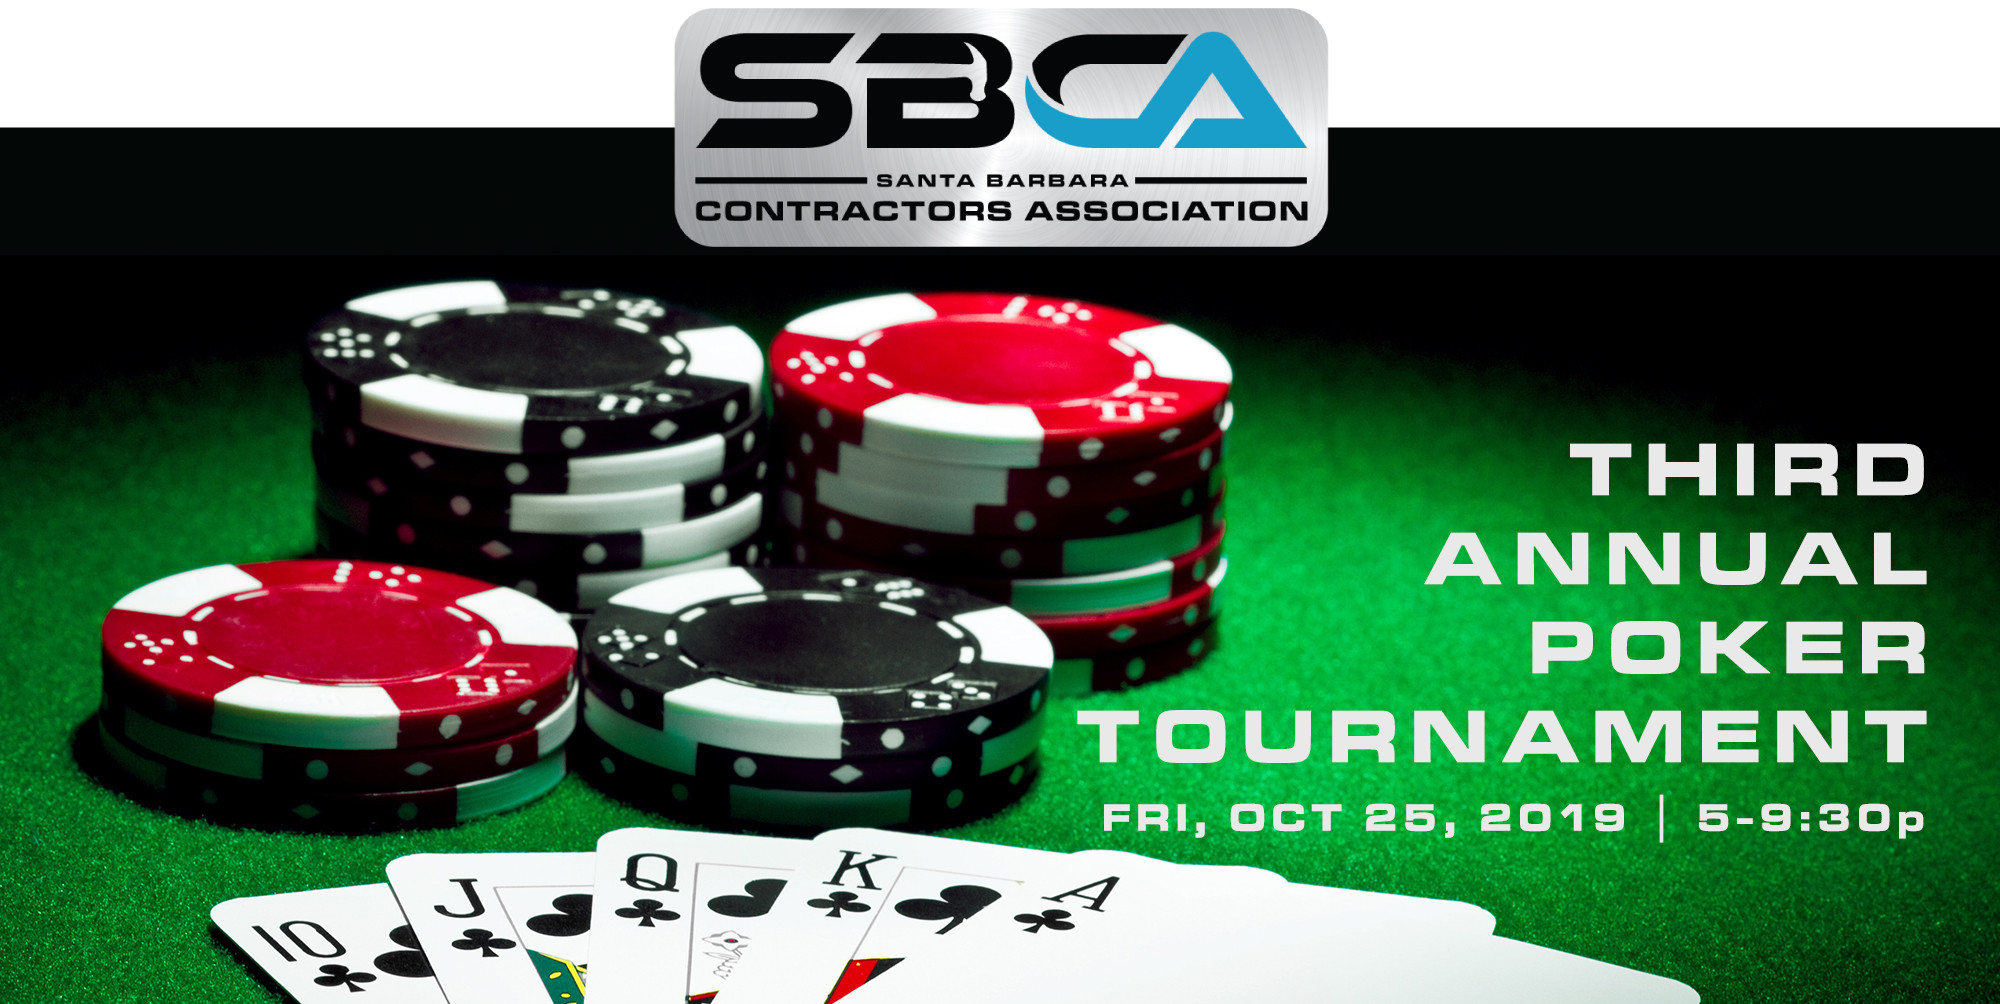 SBCA THIRD ANNUAL POKER TOURNAMENT